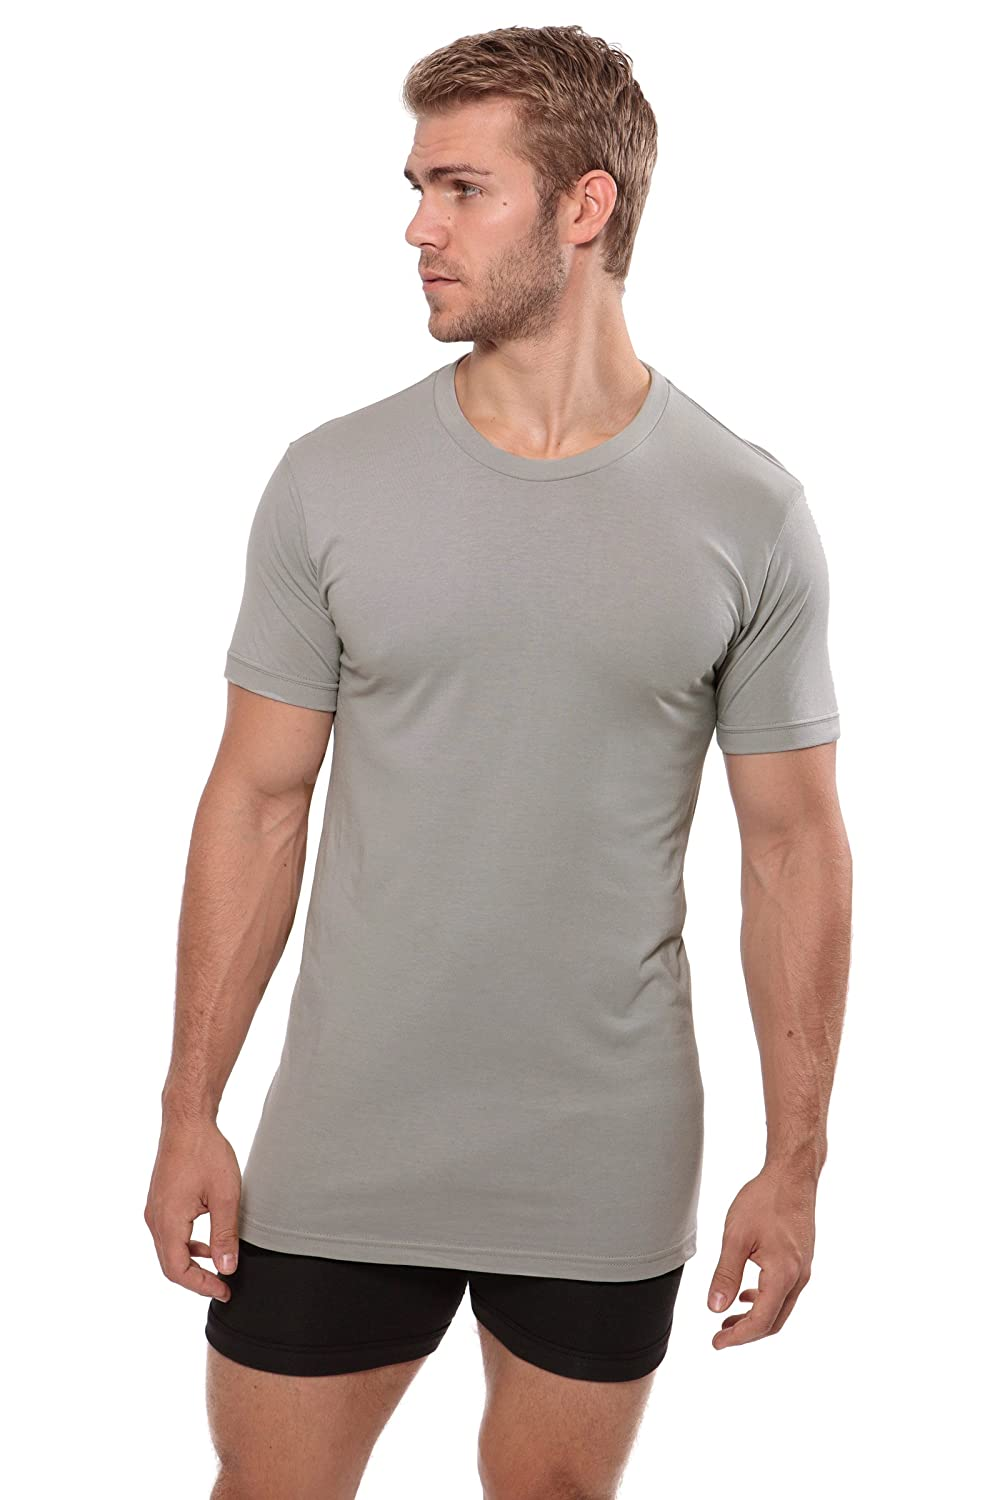 MB6001 Texere Crew Neck Undershirt for Men Dexx Luxury Shirt in Bamboo Viscose